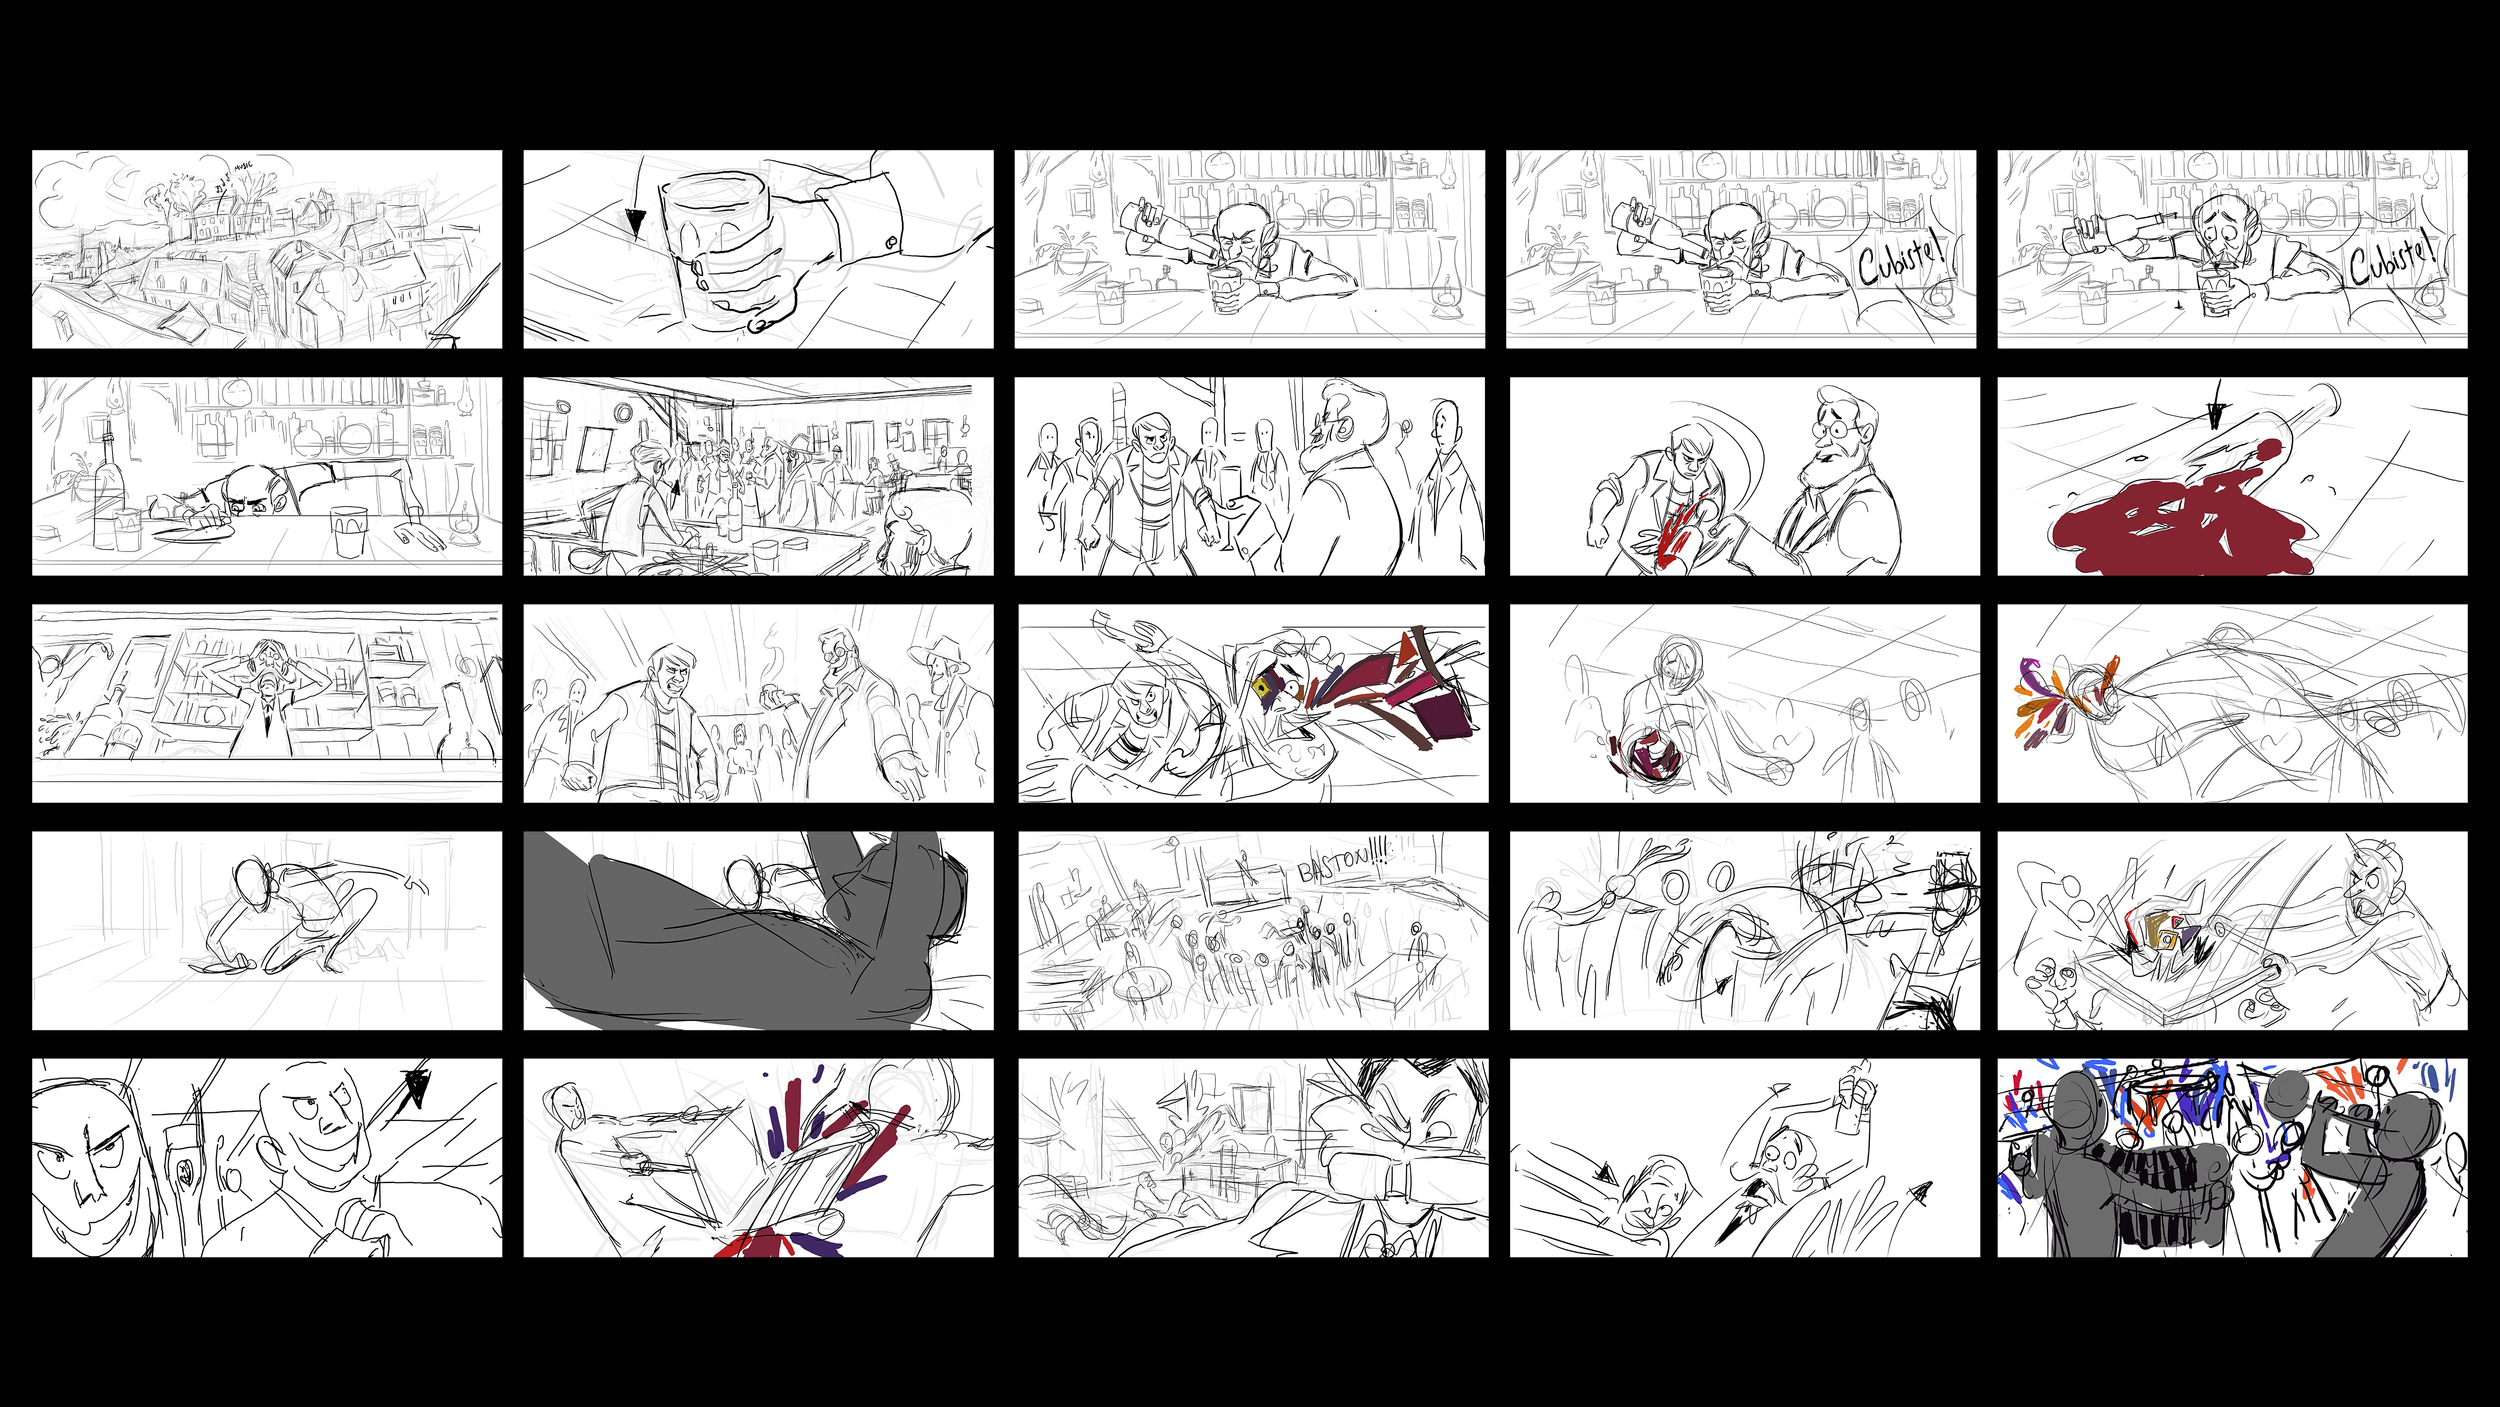 Storyboard research